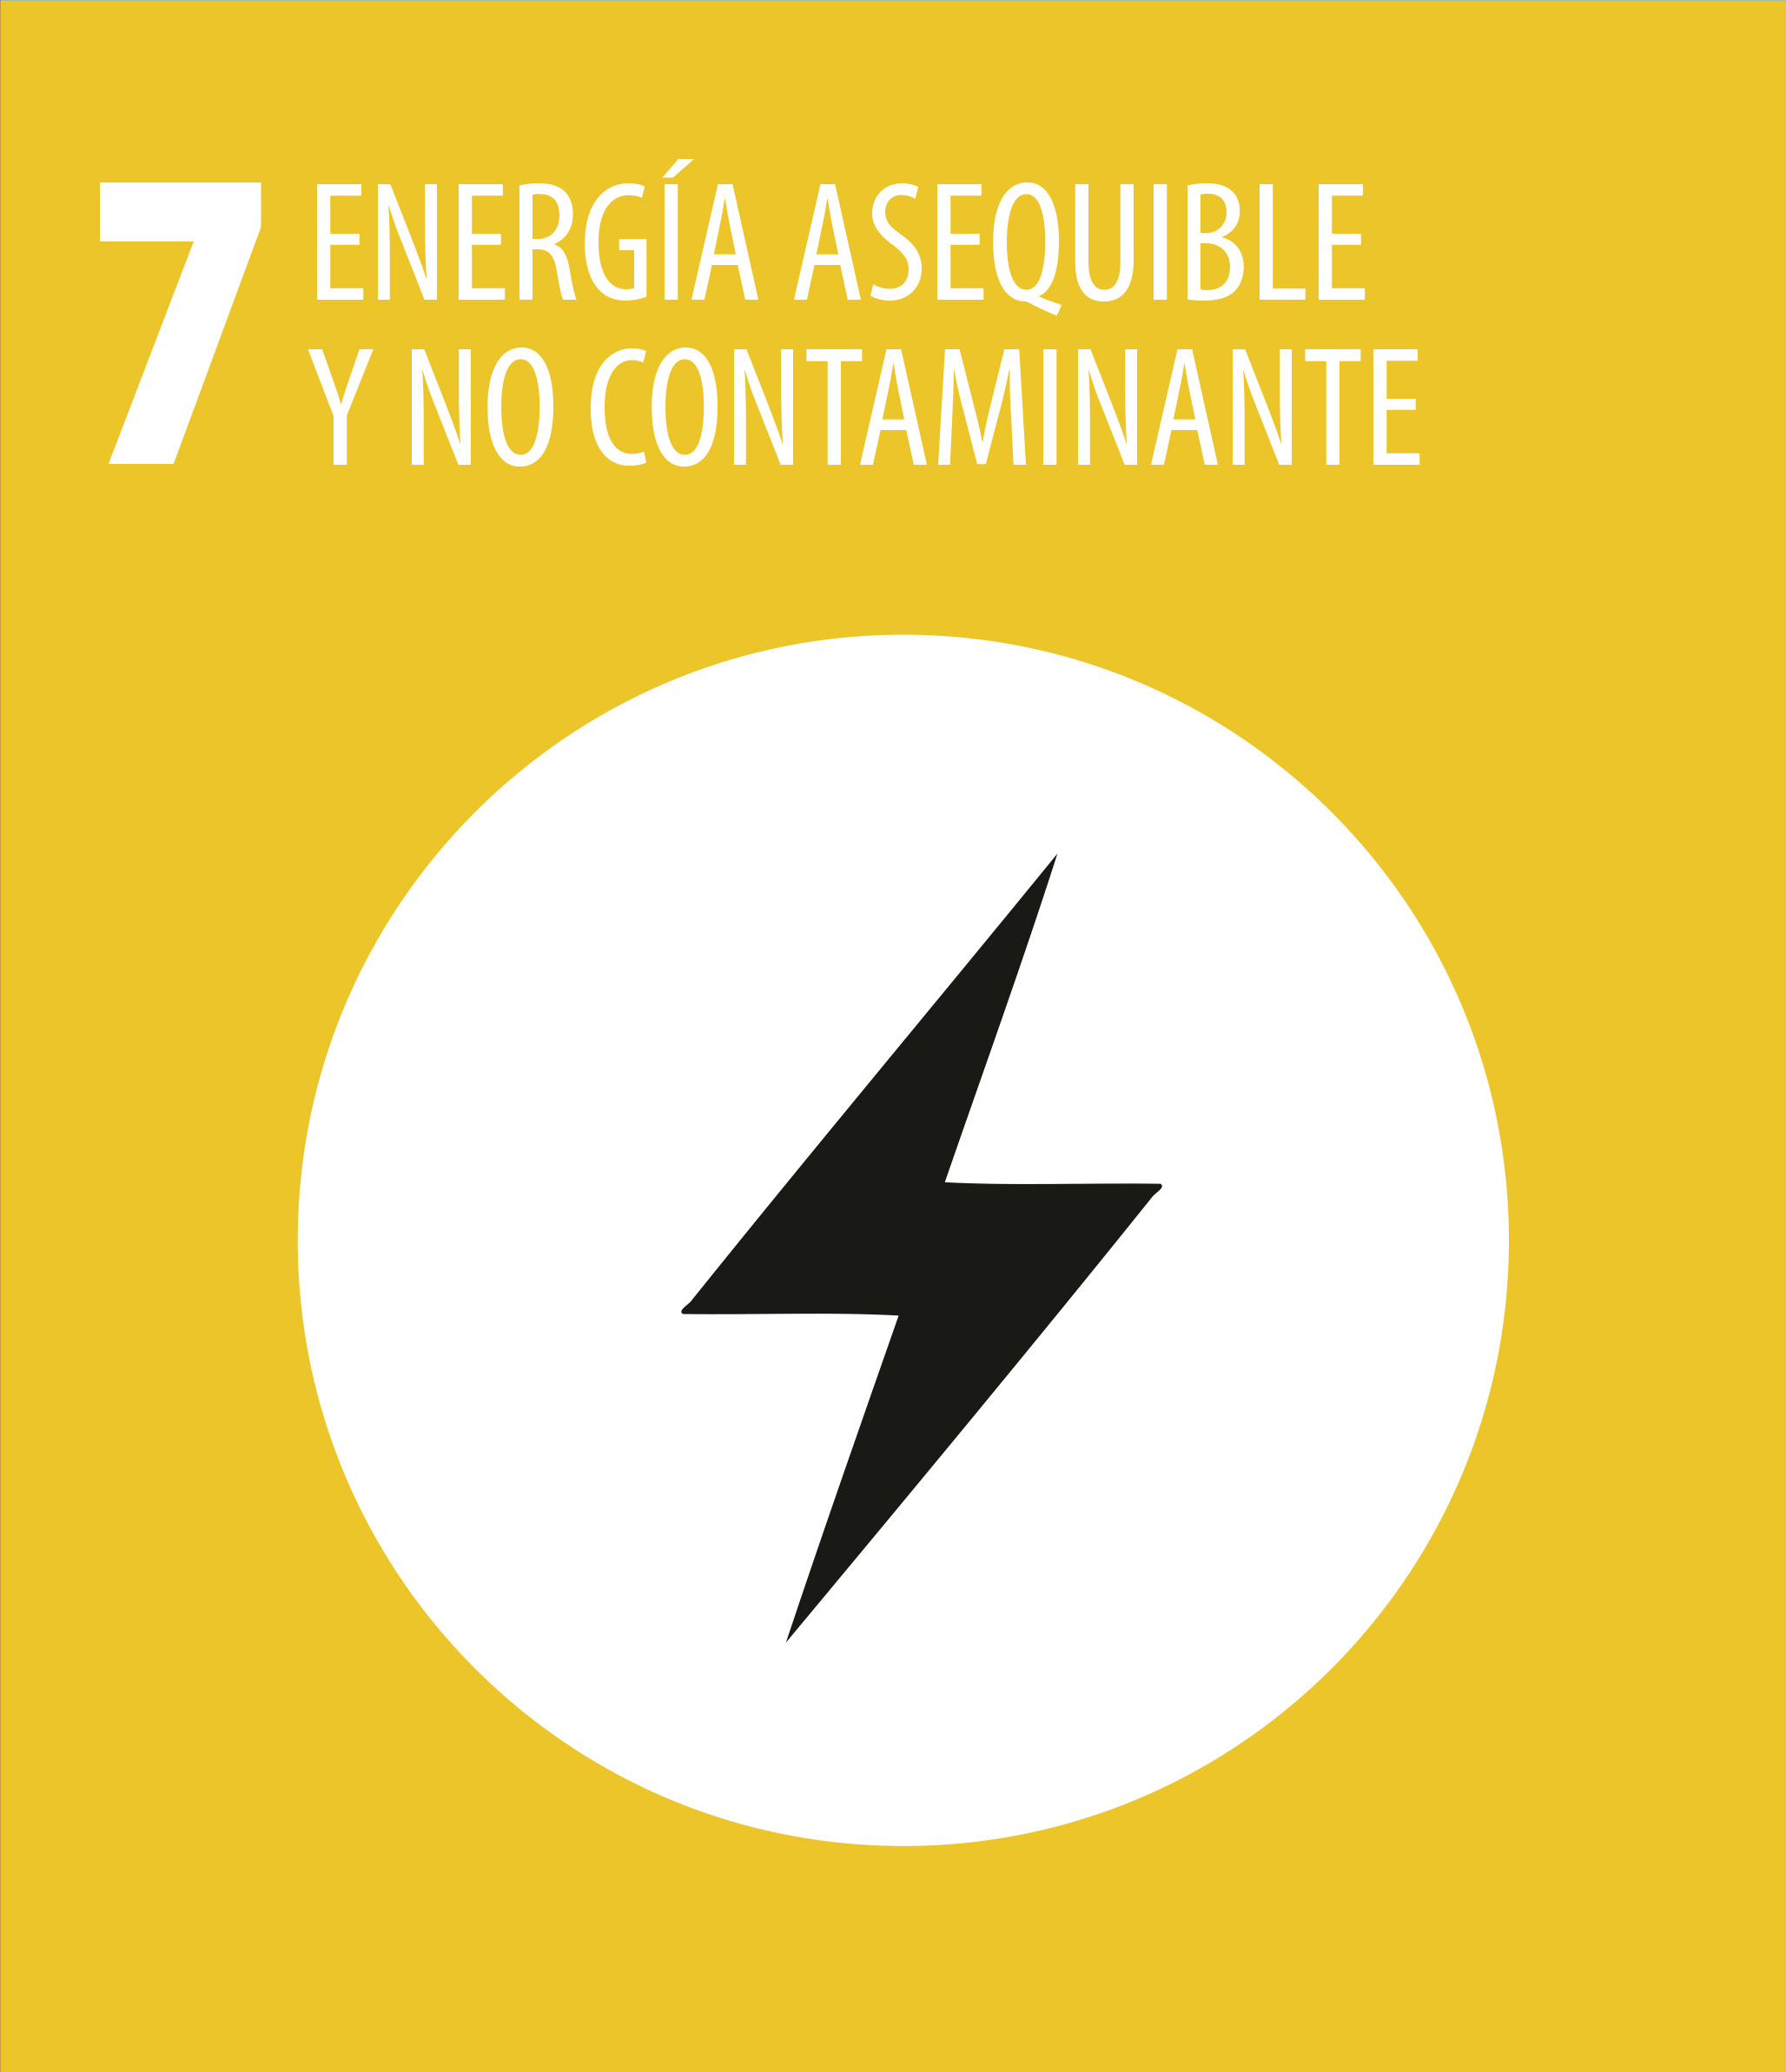 ODS 7 Energia asequible